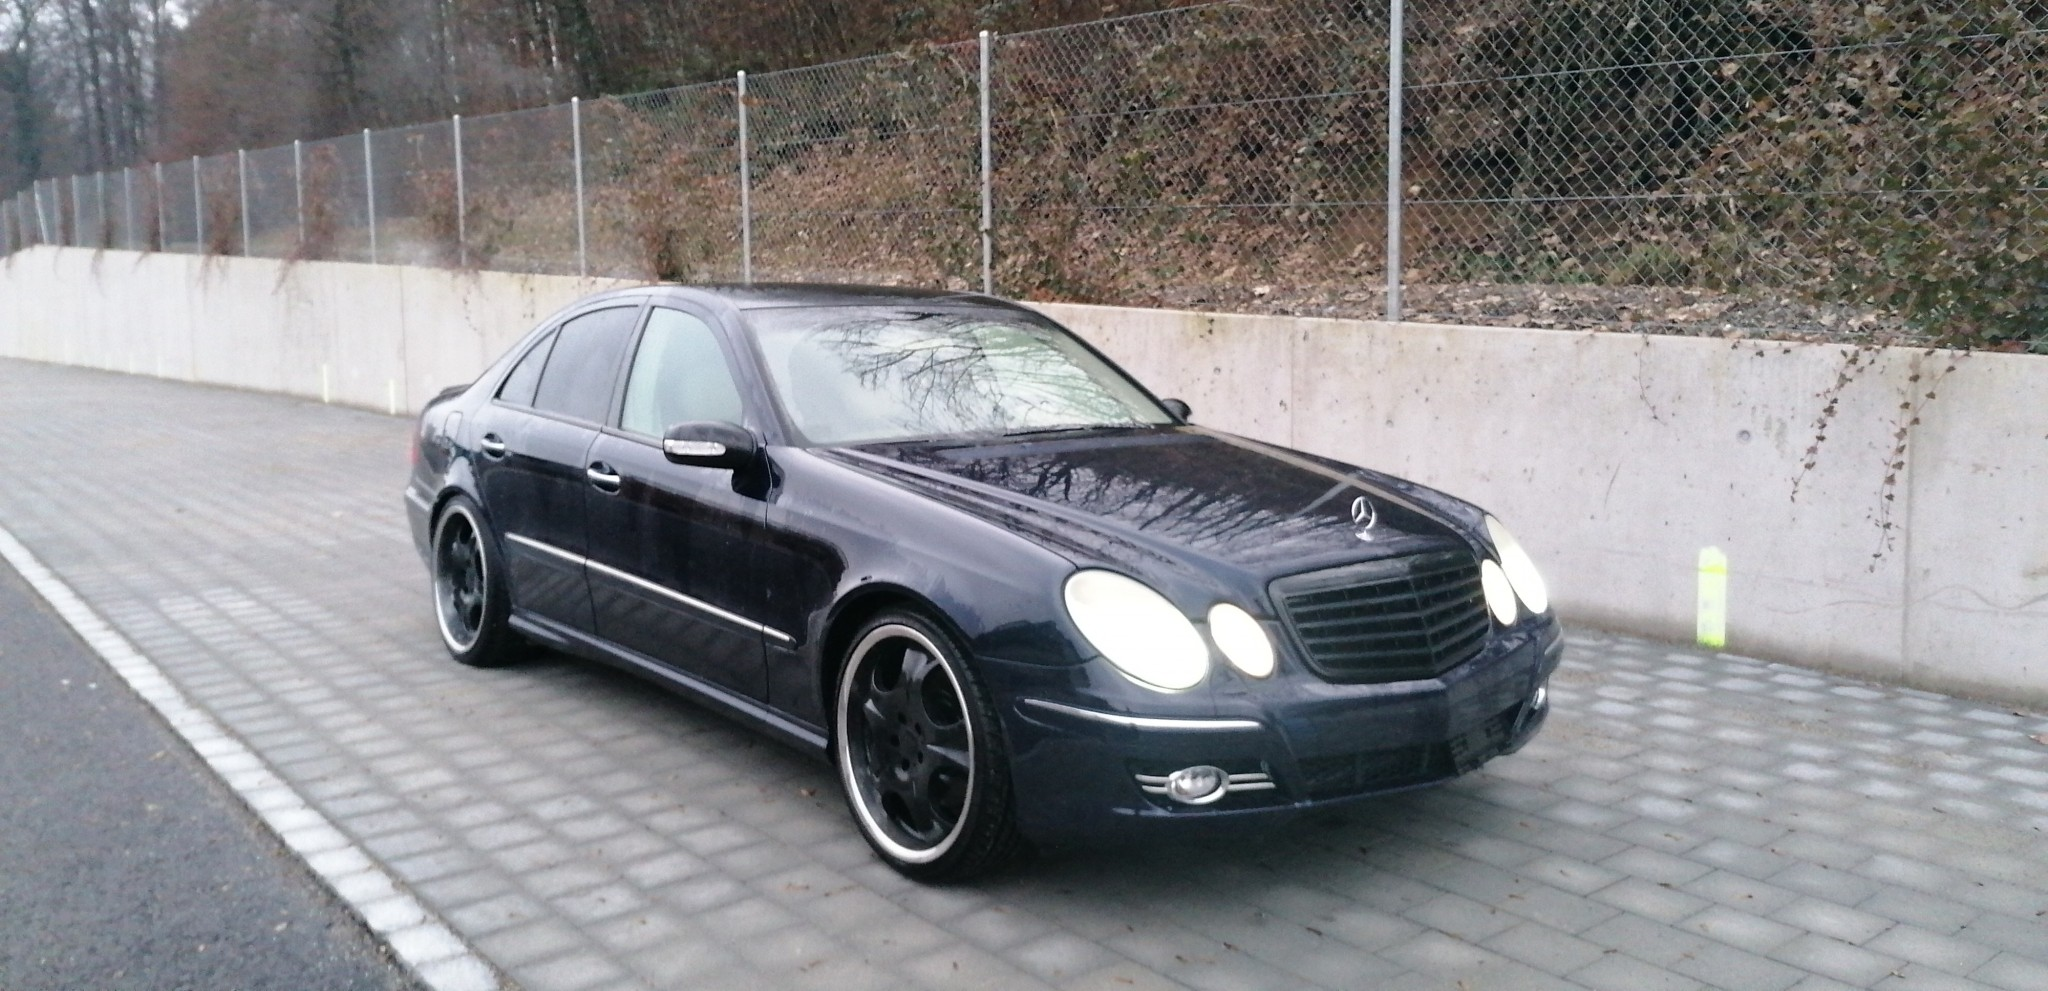 estate Mercedes-Benz E-Klasse e500 w211 Amg look